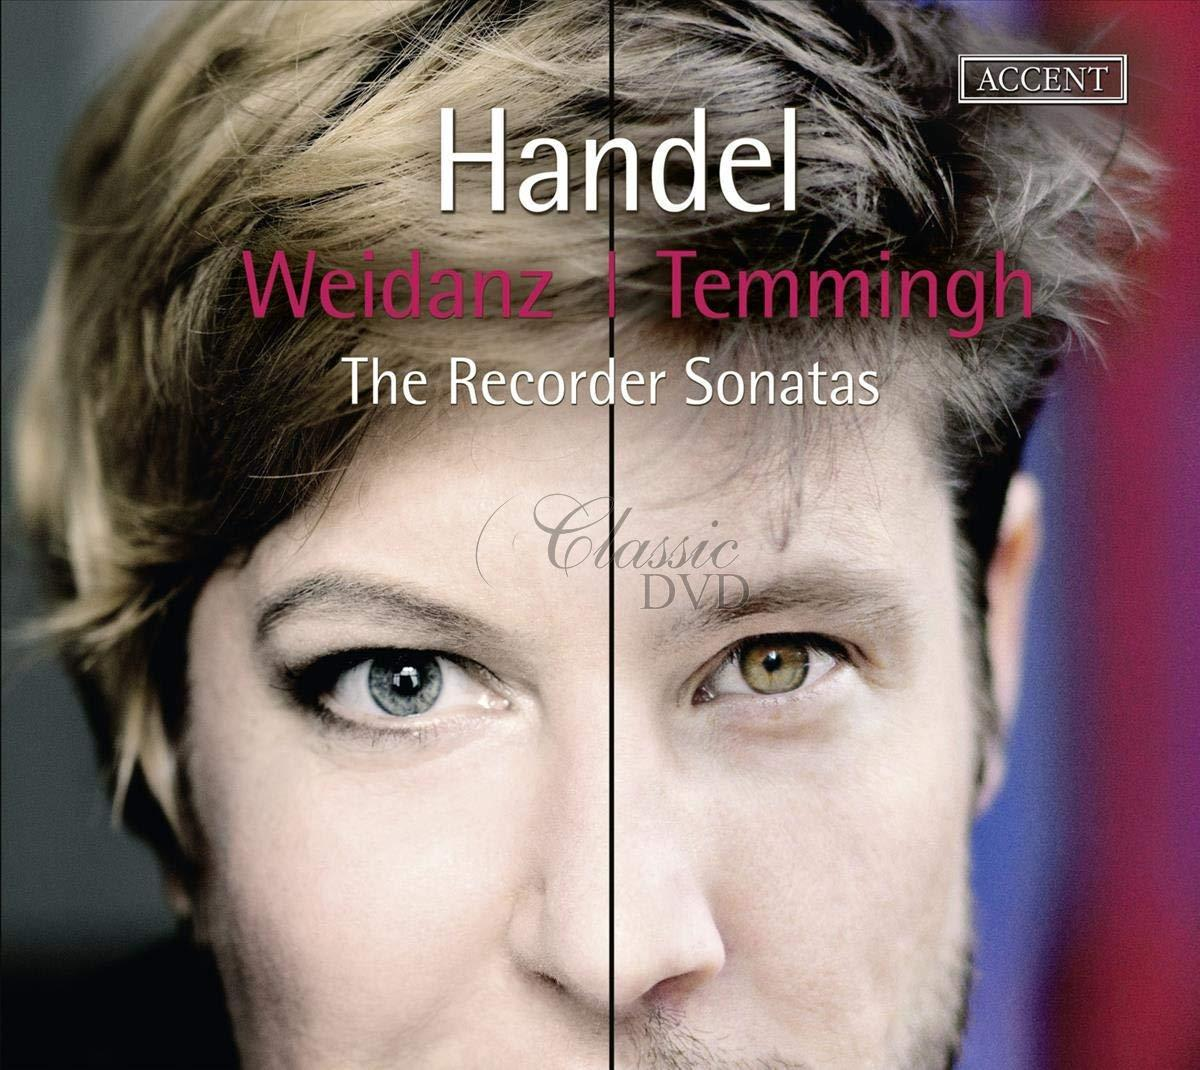 Handel: The Recorder Sonatas.   Stefan Temmingh; Wiebke Weidanz (CD)